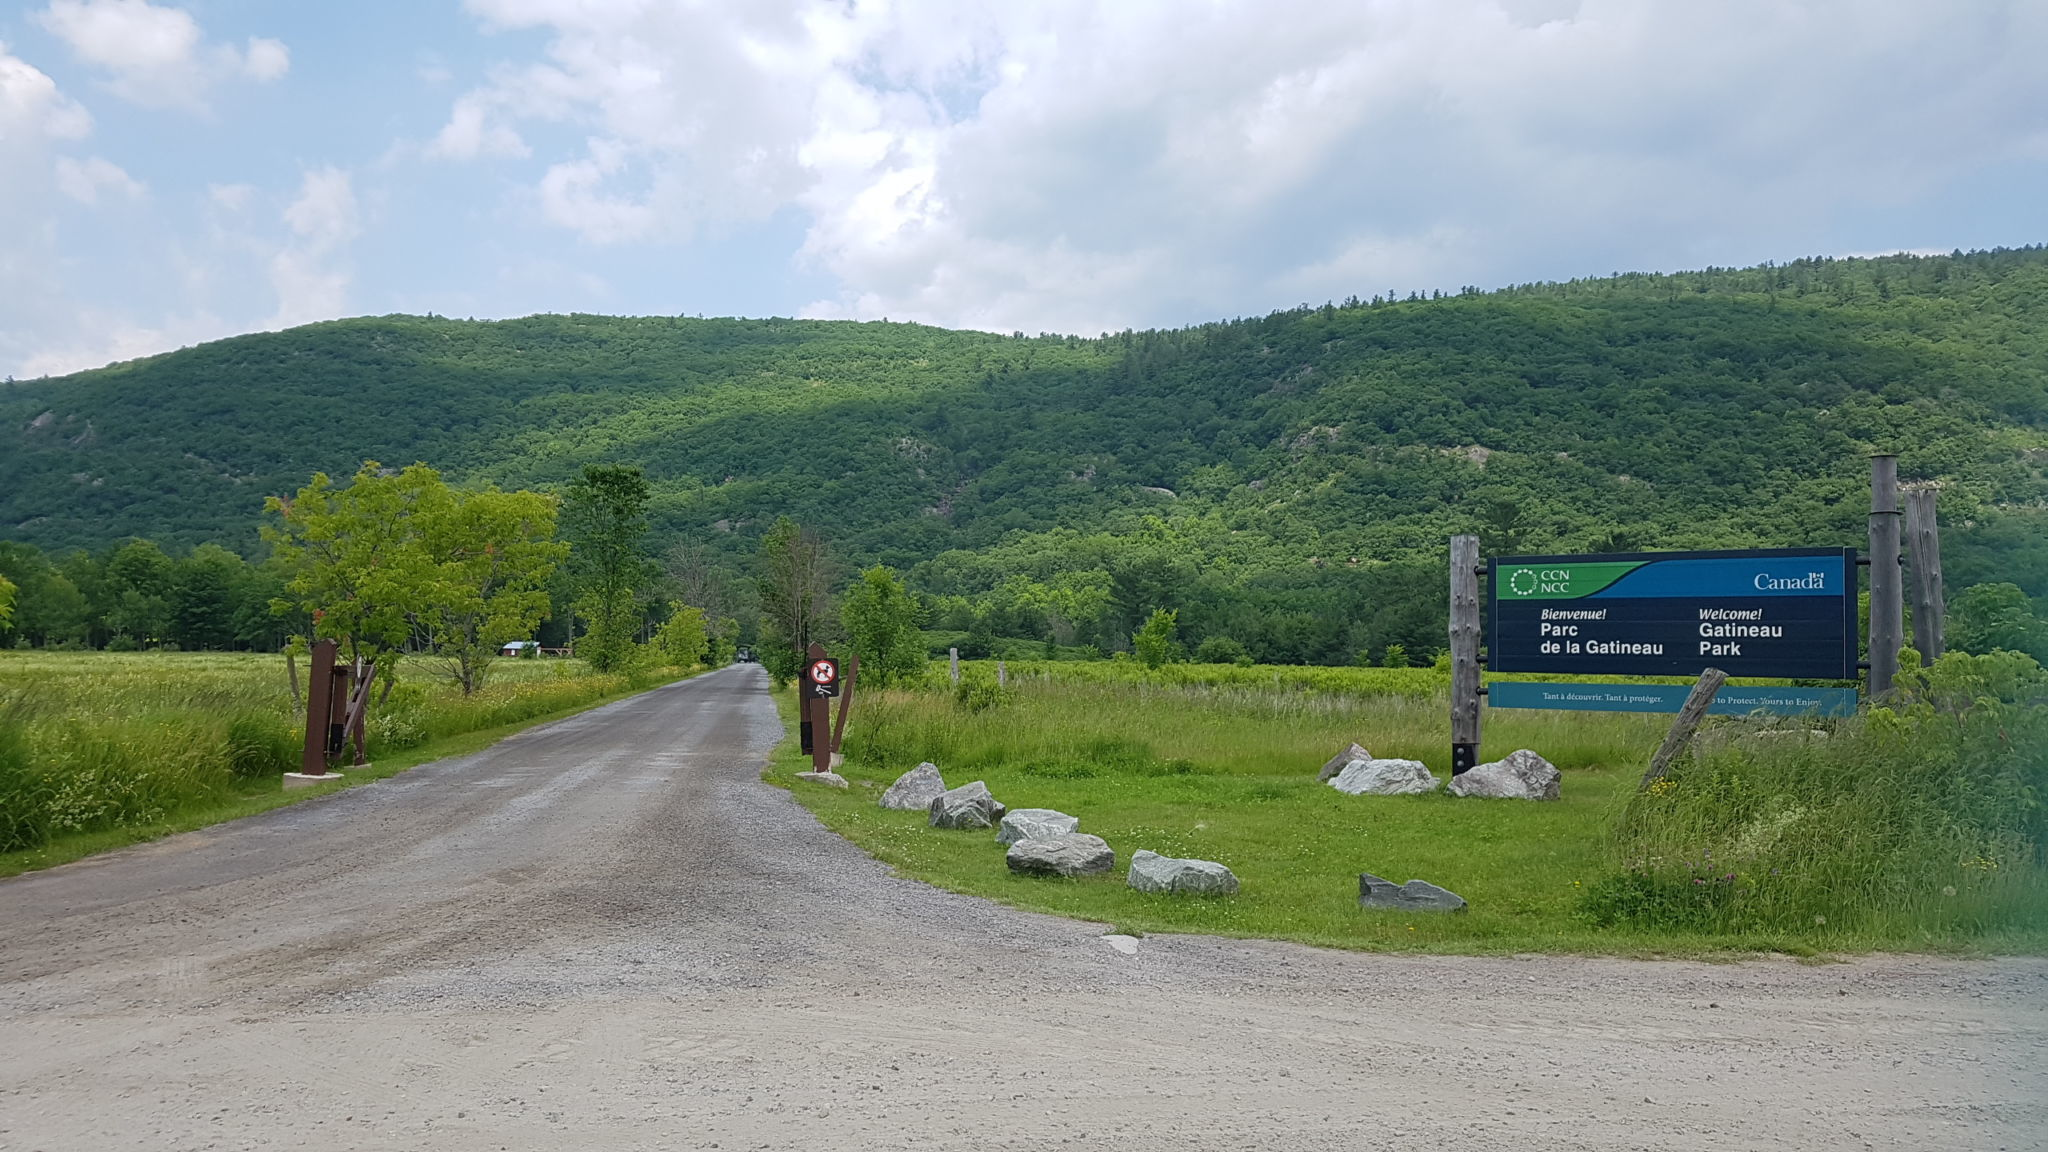 The Luskville Falls area in summer. Welcome sign and gravel road in the foreground. The hills of the Outaouais in the background.